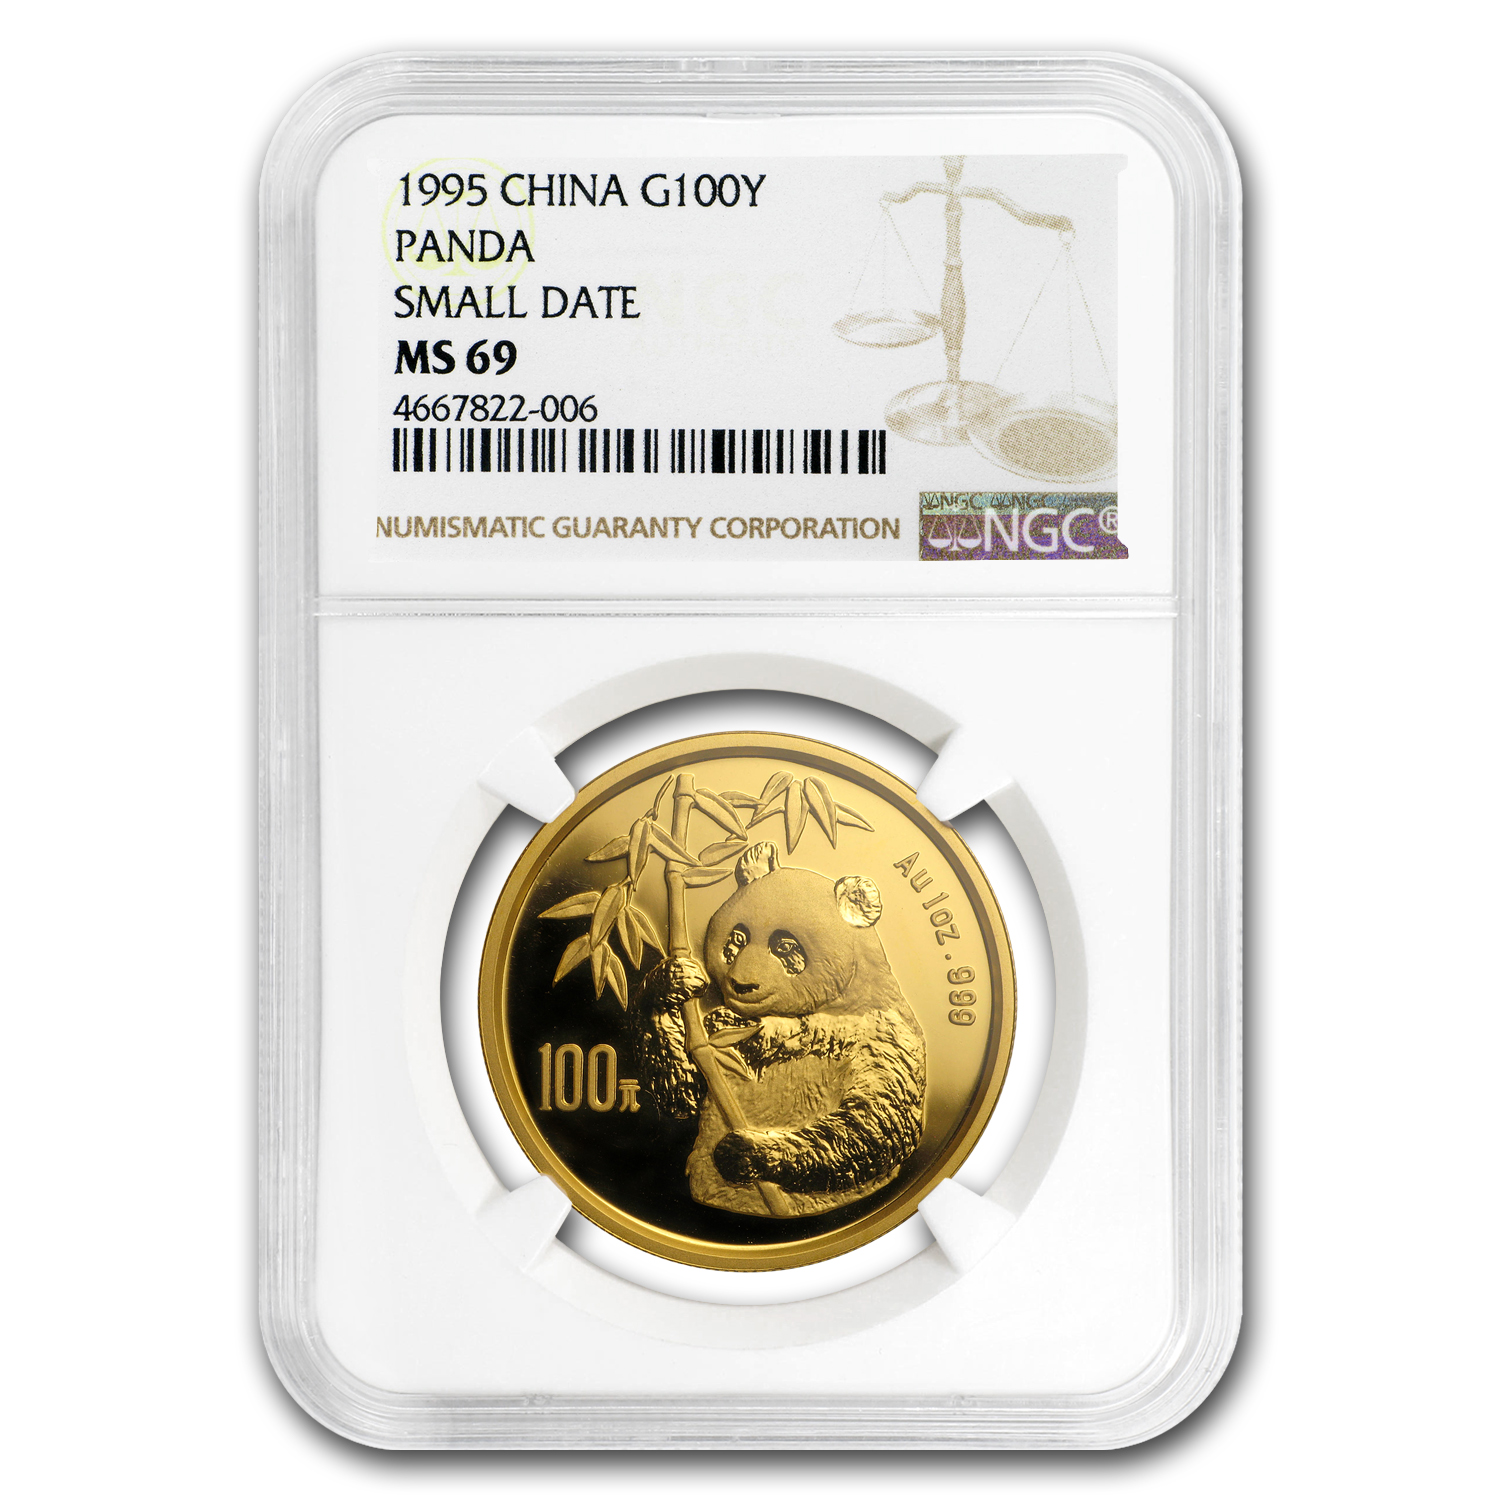 1995 1 oz Gold Chinese Panda MS-69 NGC - Small Date